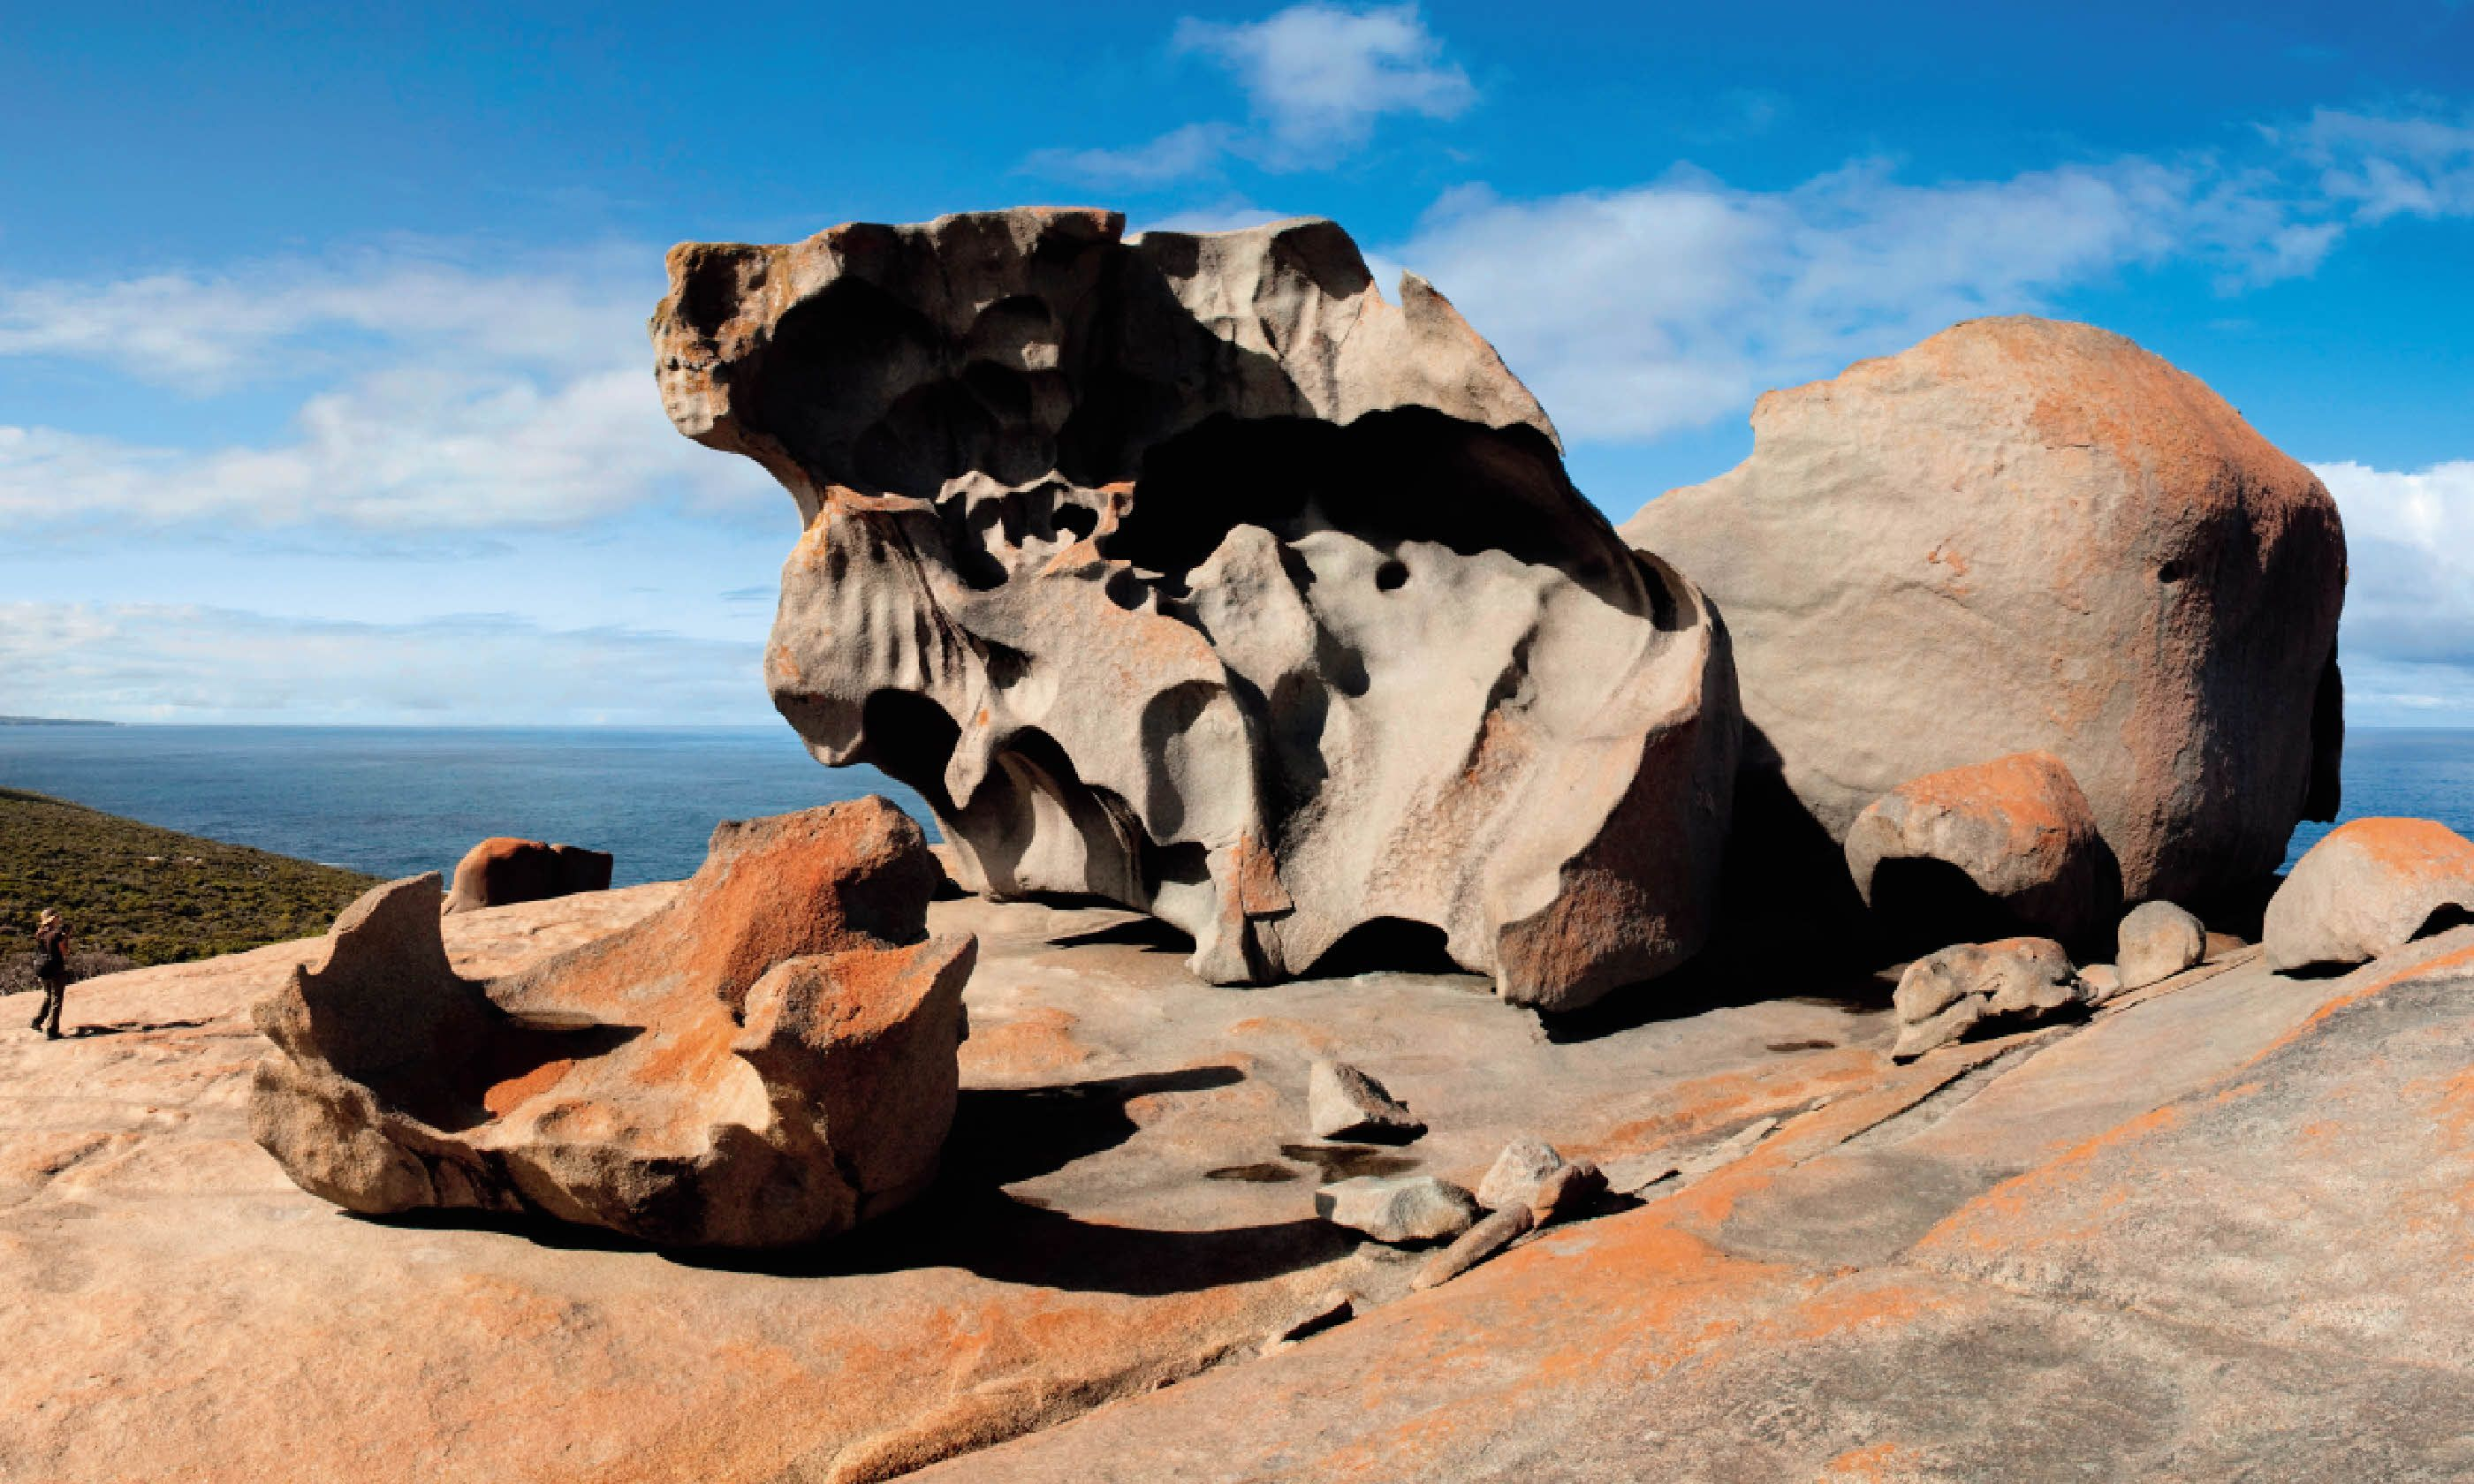 The Remarkable Rocks (Dreamstime)